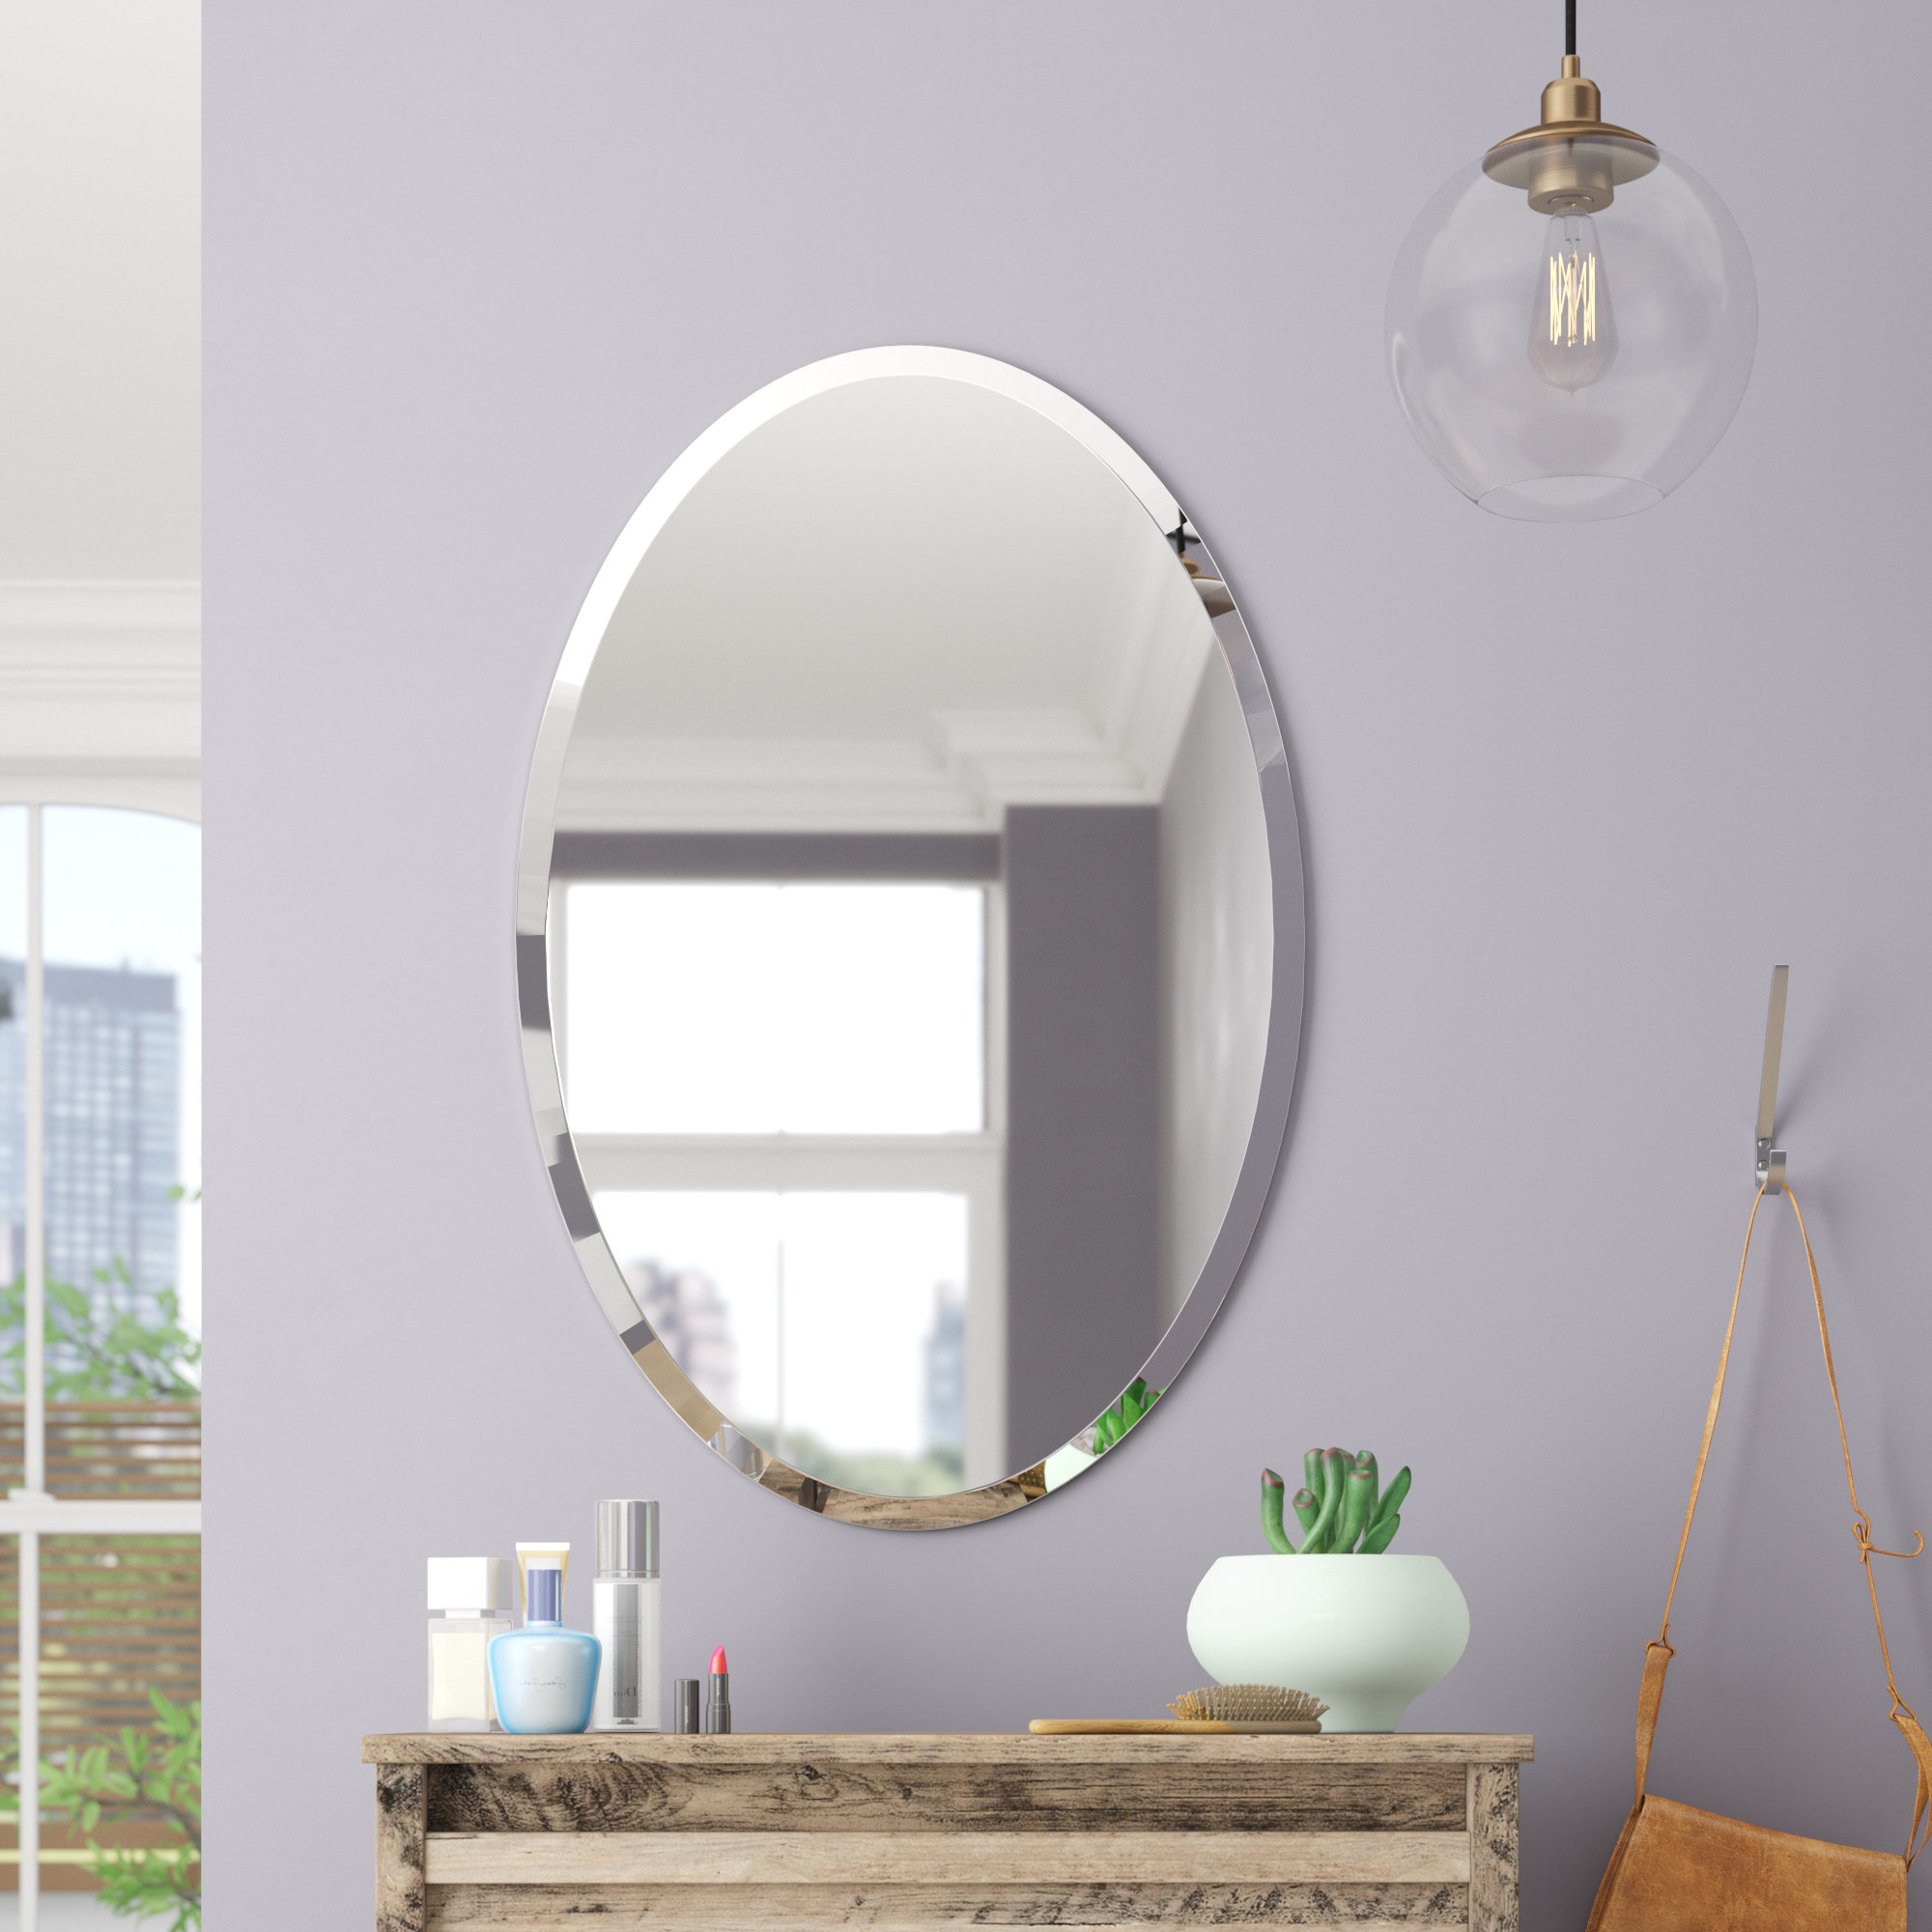 Thornbury Oval Bevel Frameless Wall Mirror Pertaining To 2020 Frameless Beveled Wall Mirrors (View 3 of 20)